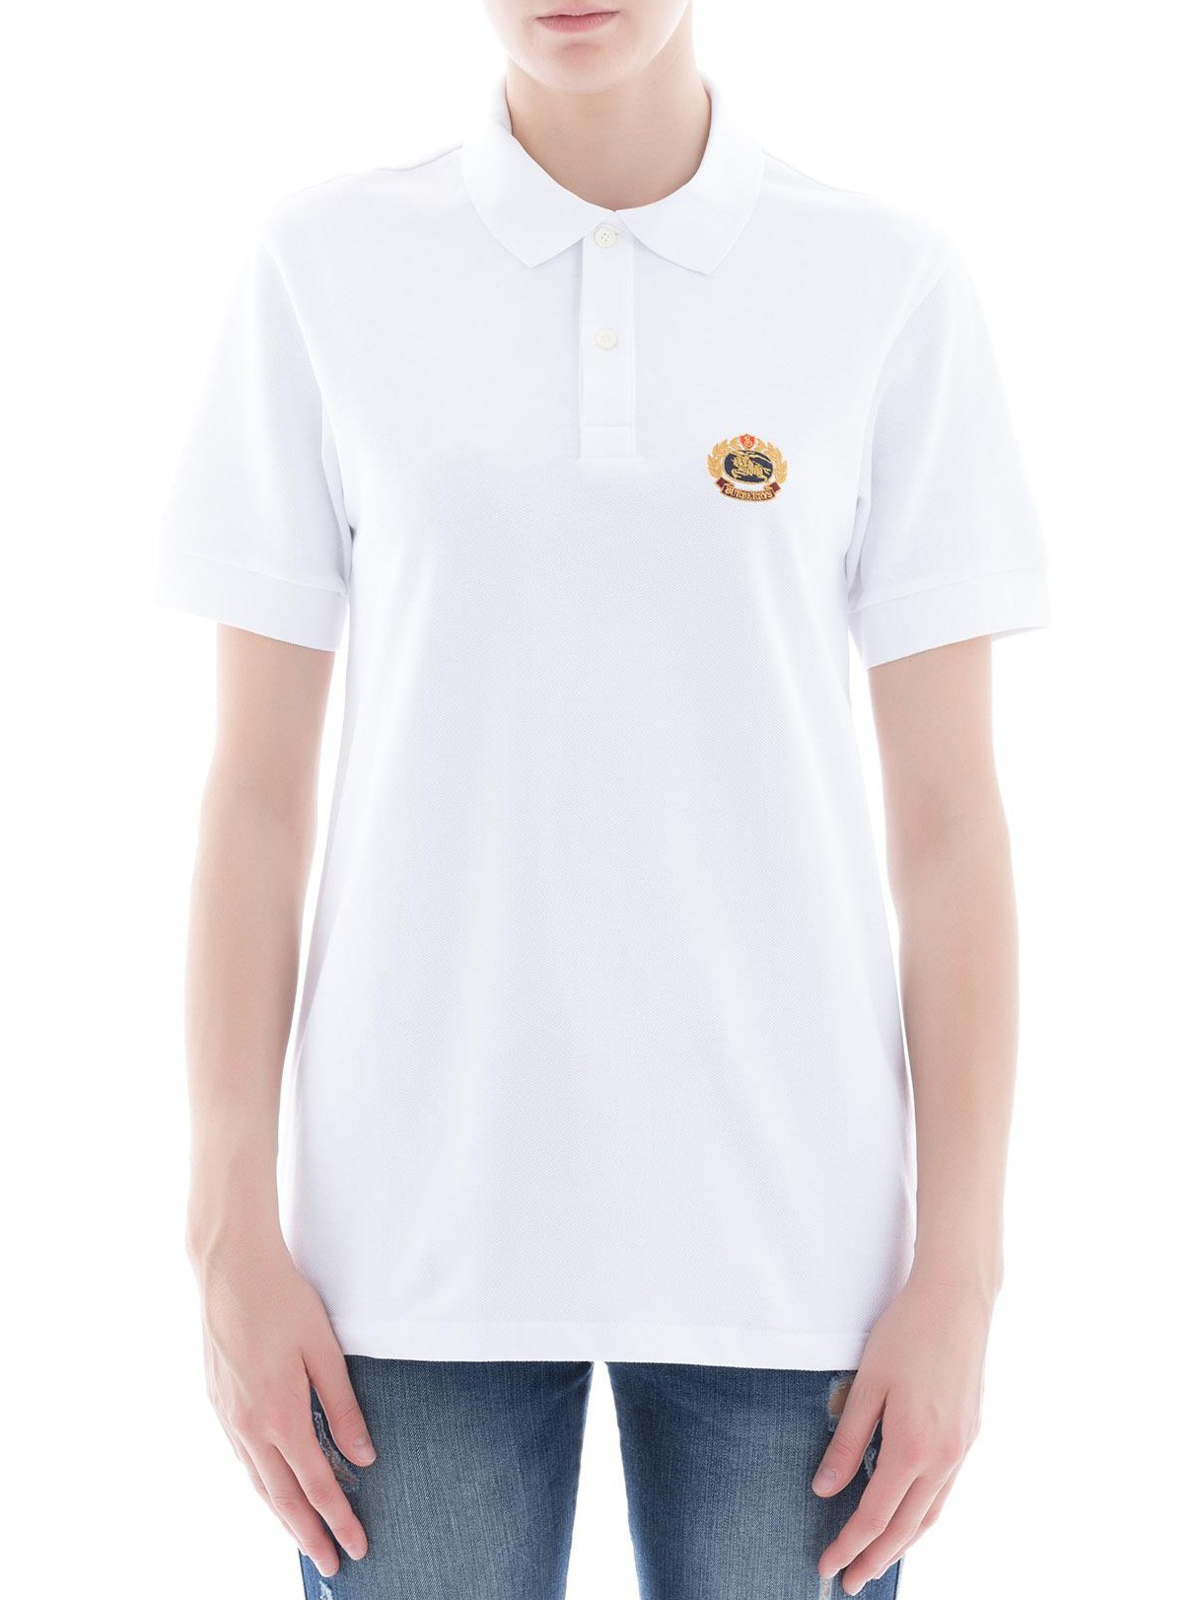 Burberry - Archive crest embroidery polo - polo shirts - 4548042